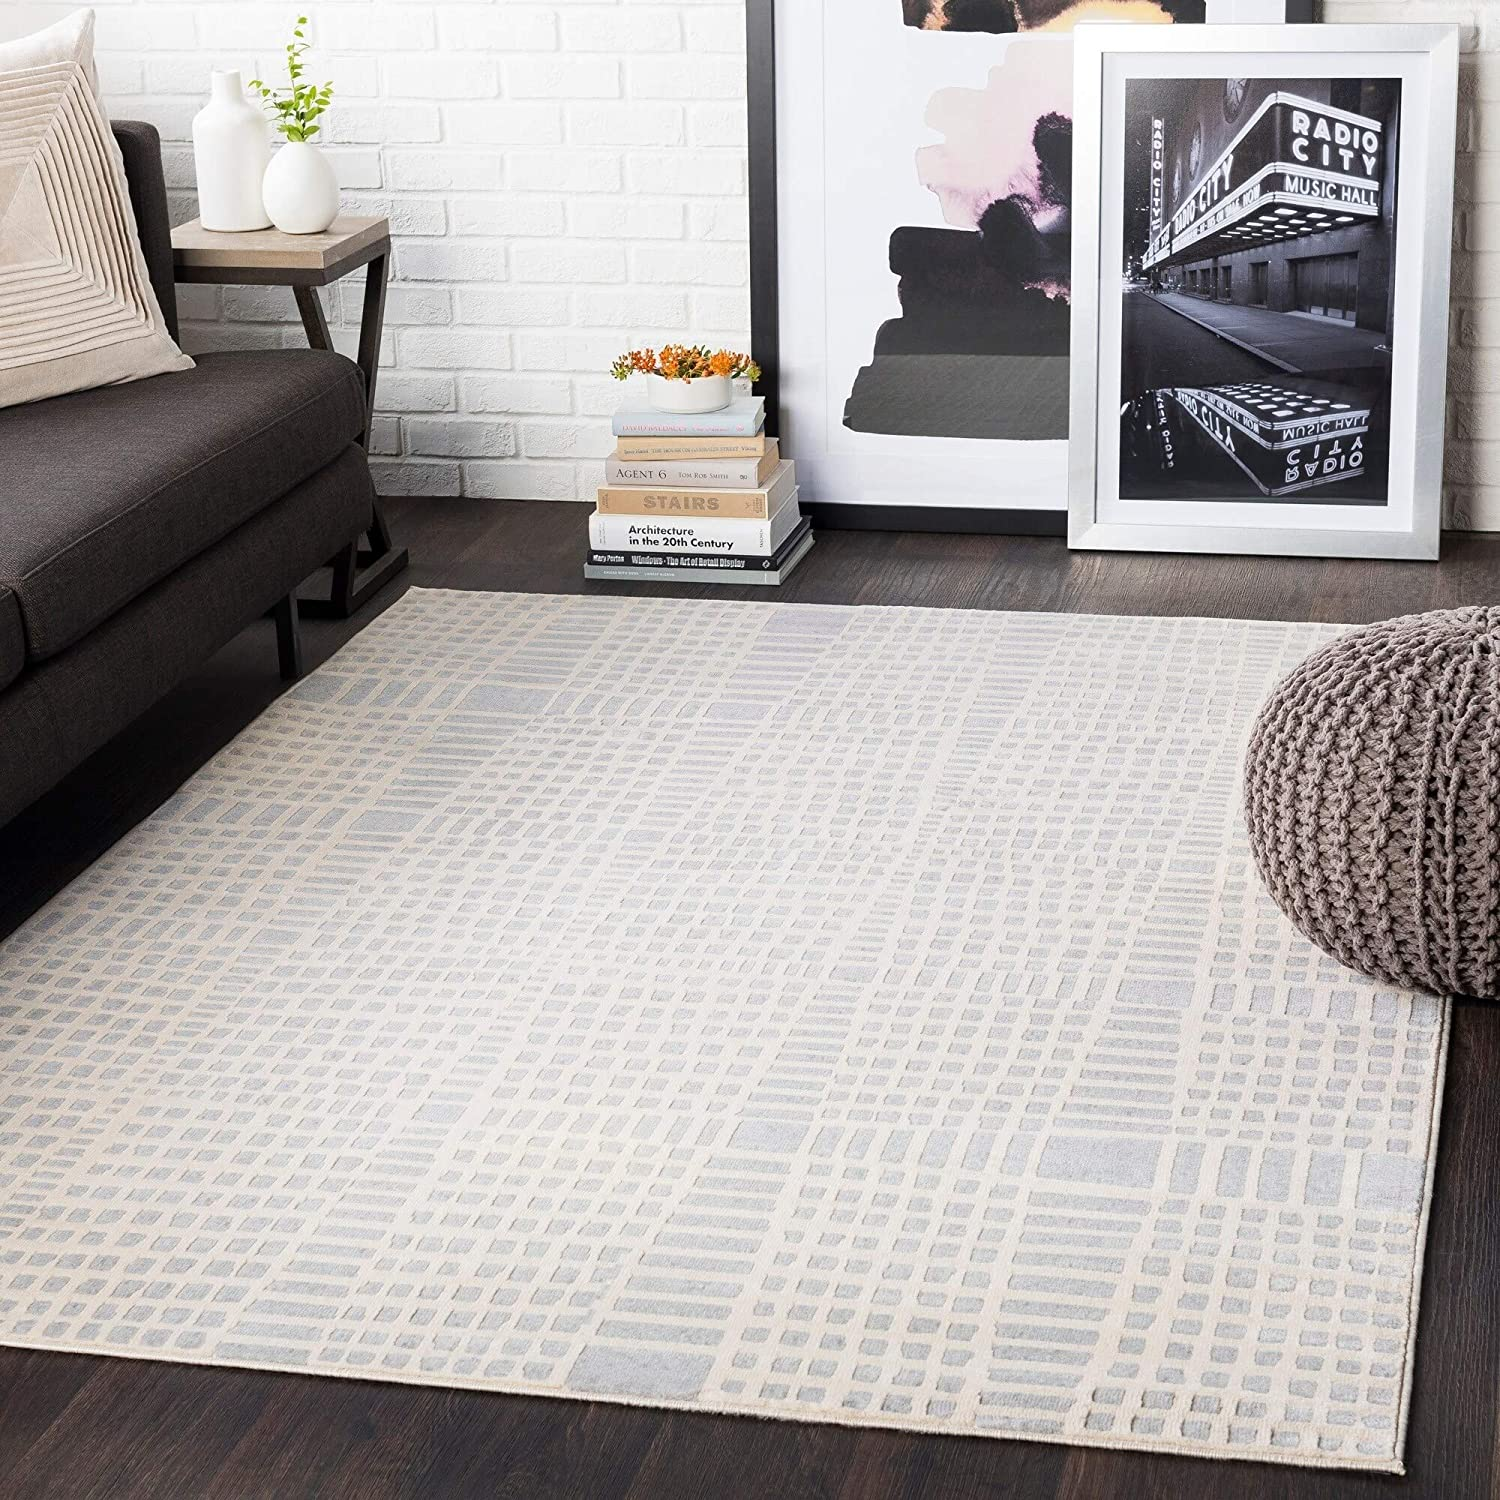 "Light Grey Abstract Grid Area Rug 5'3"" X 7'3"" Brown Geometric Modern Contemporary Polypropylene Synthetic Latex Free Pet Friendly Stain Resistant"